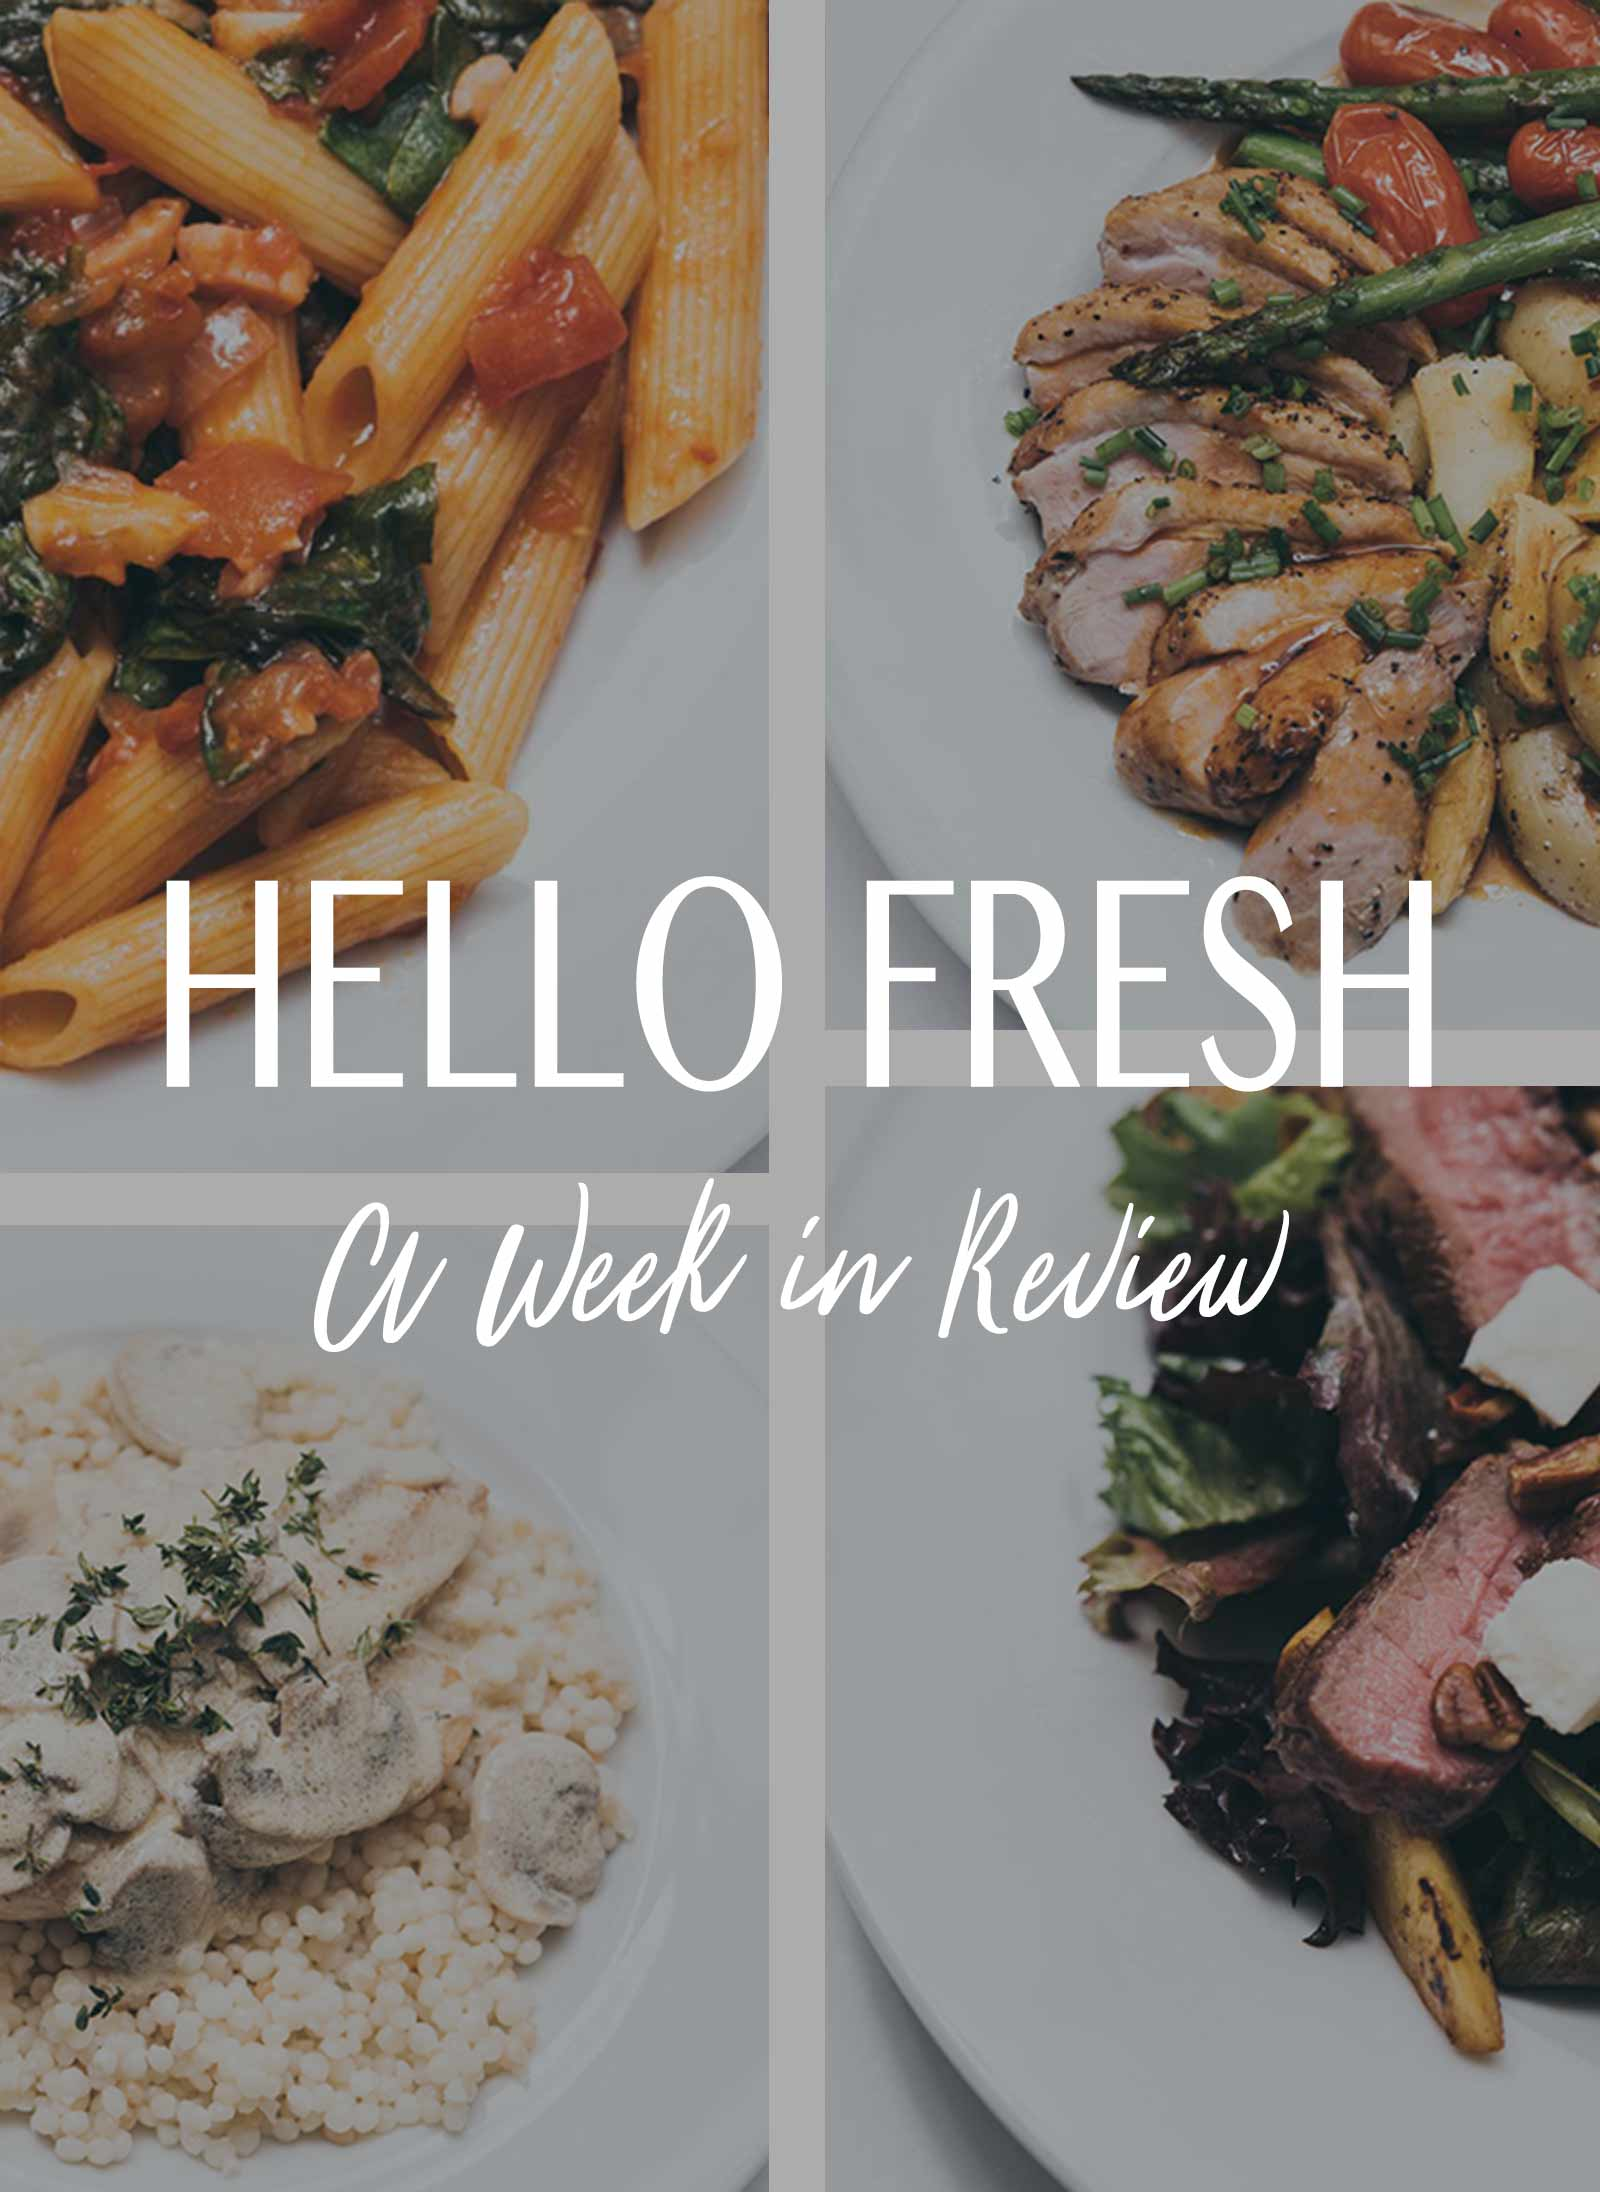 Meal Kit Delivery Service Hellofresh Features And Price